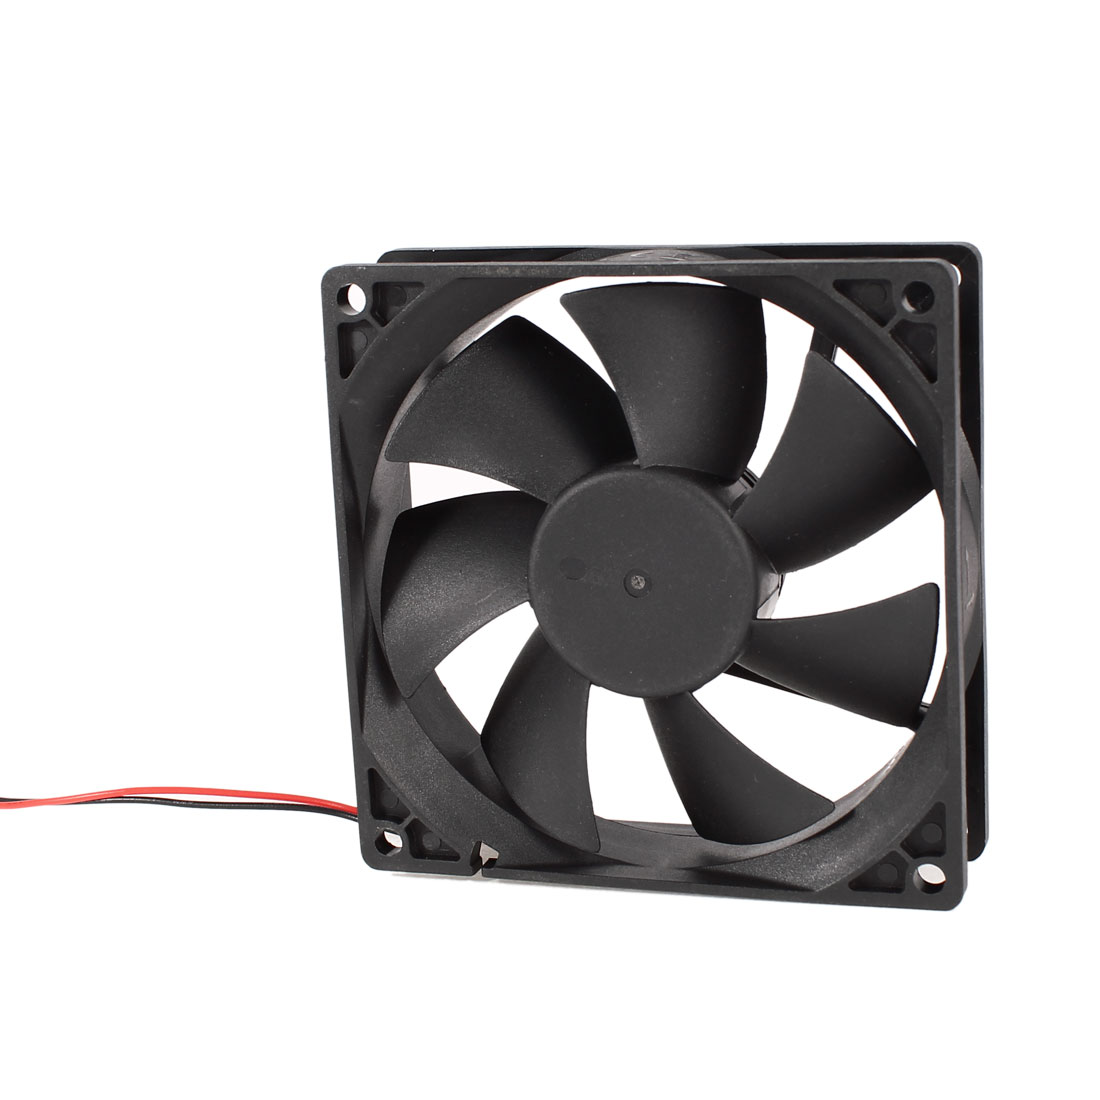 DC 24V 0.15A 90x25mm Plastic Cooling Fan for PC Computer Case CPU Cooler